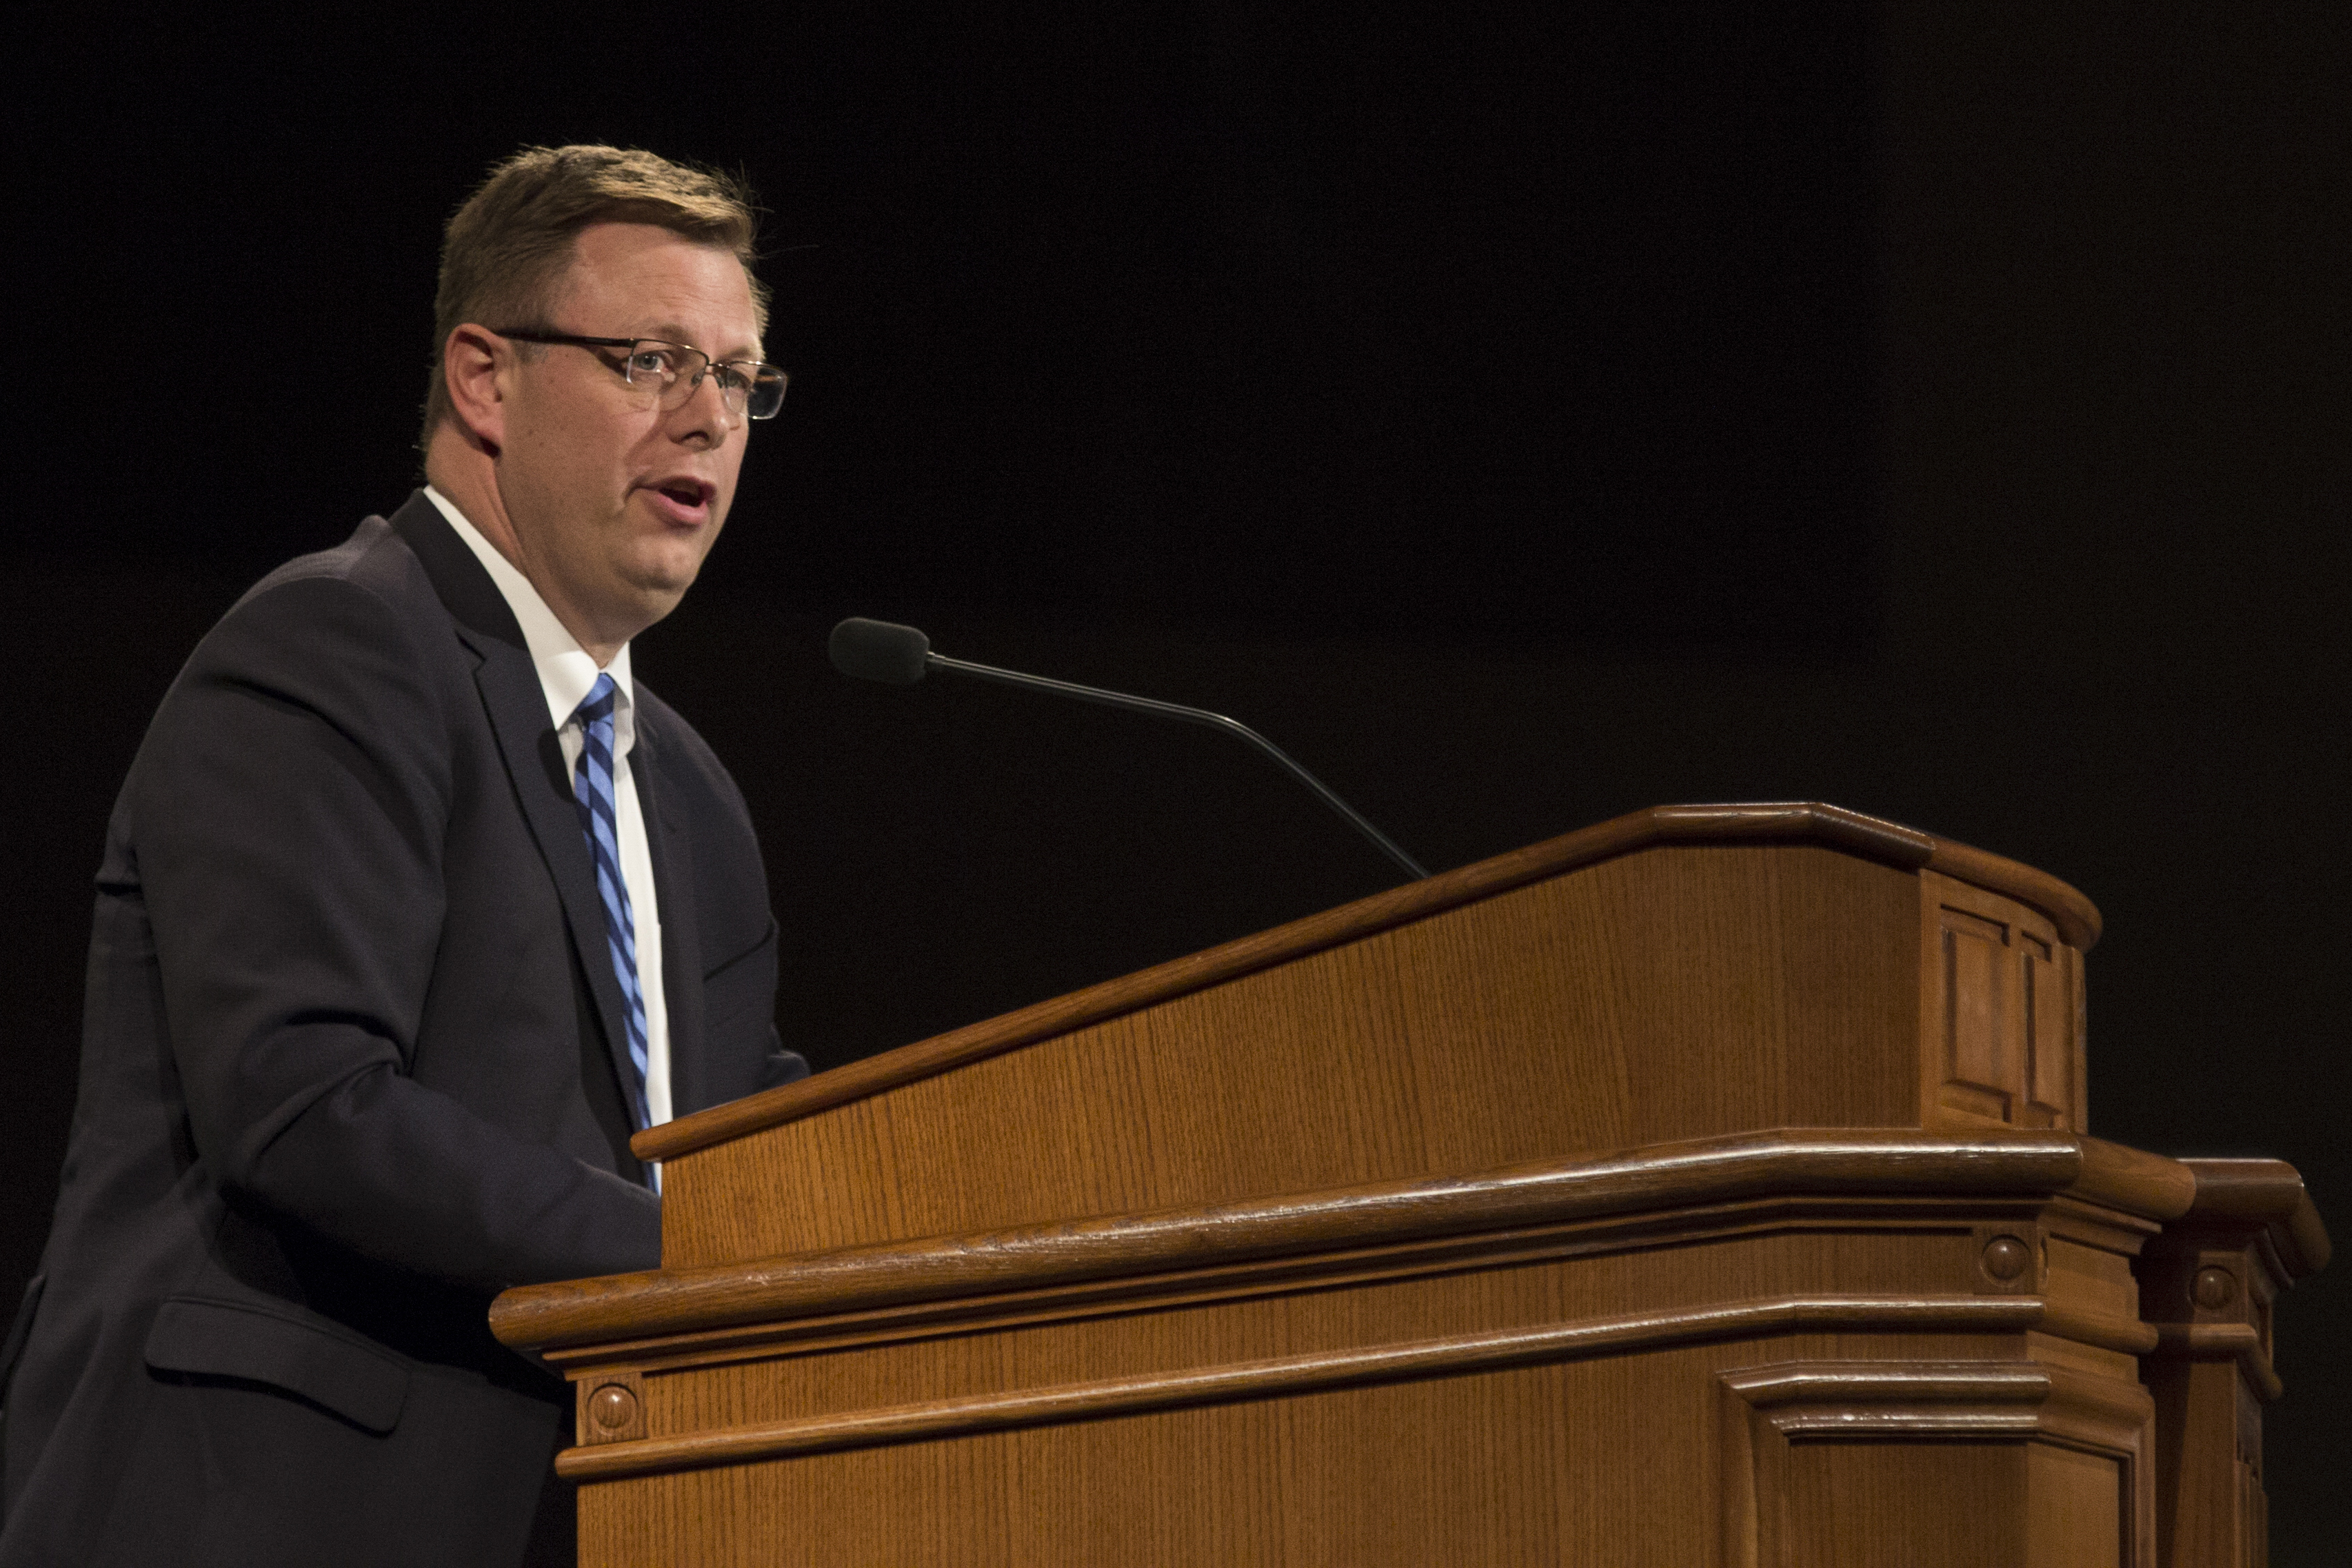 BYU-Pathway Worldwide inaugurate first president